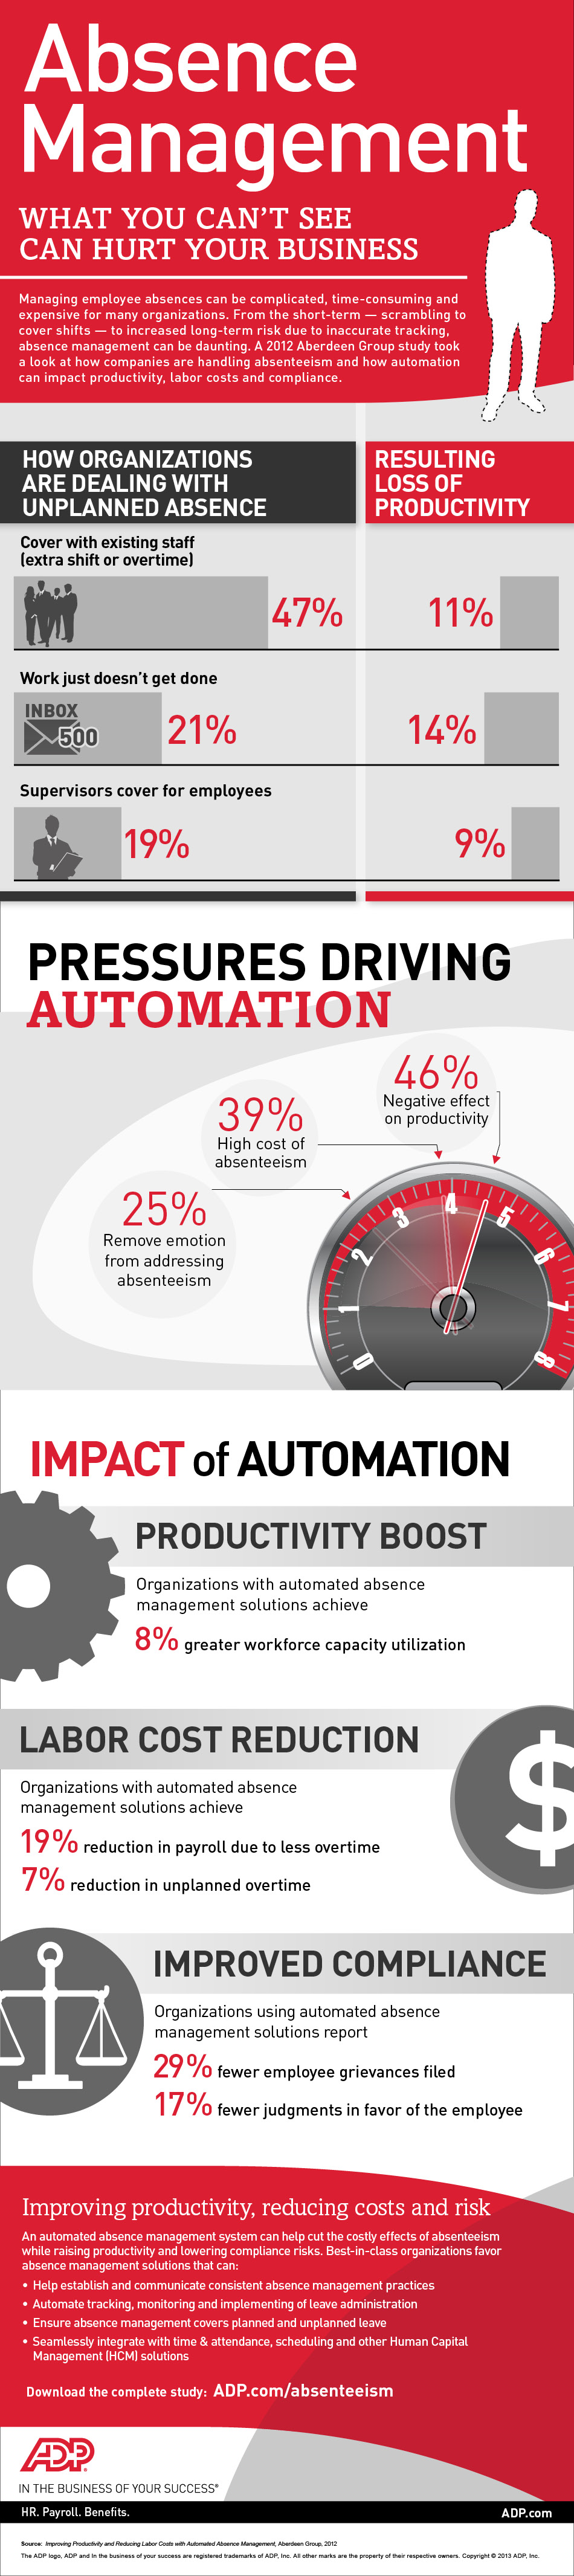 Automation As A Technique For Managing Absenteeism Cma